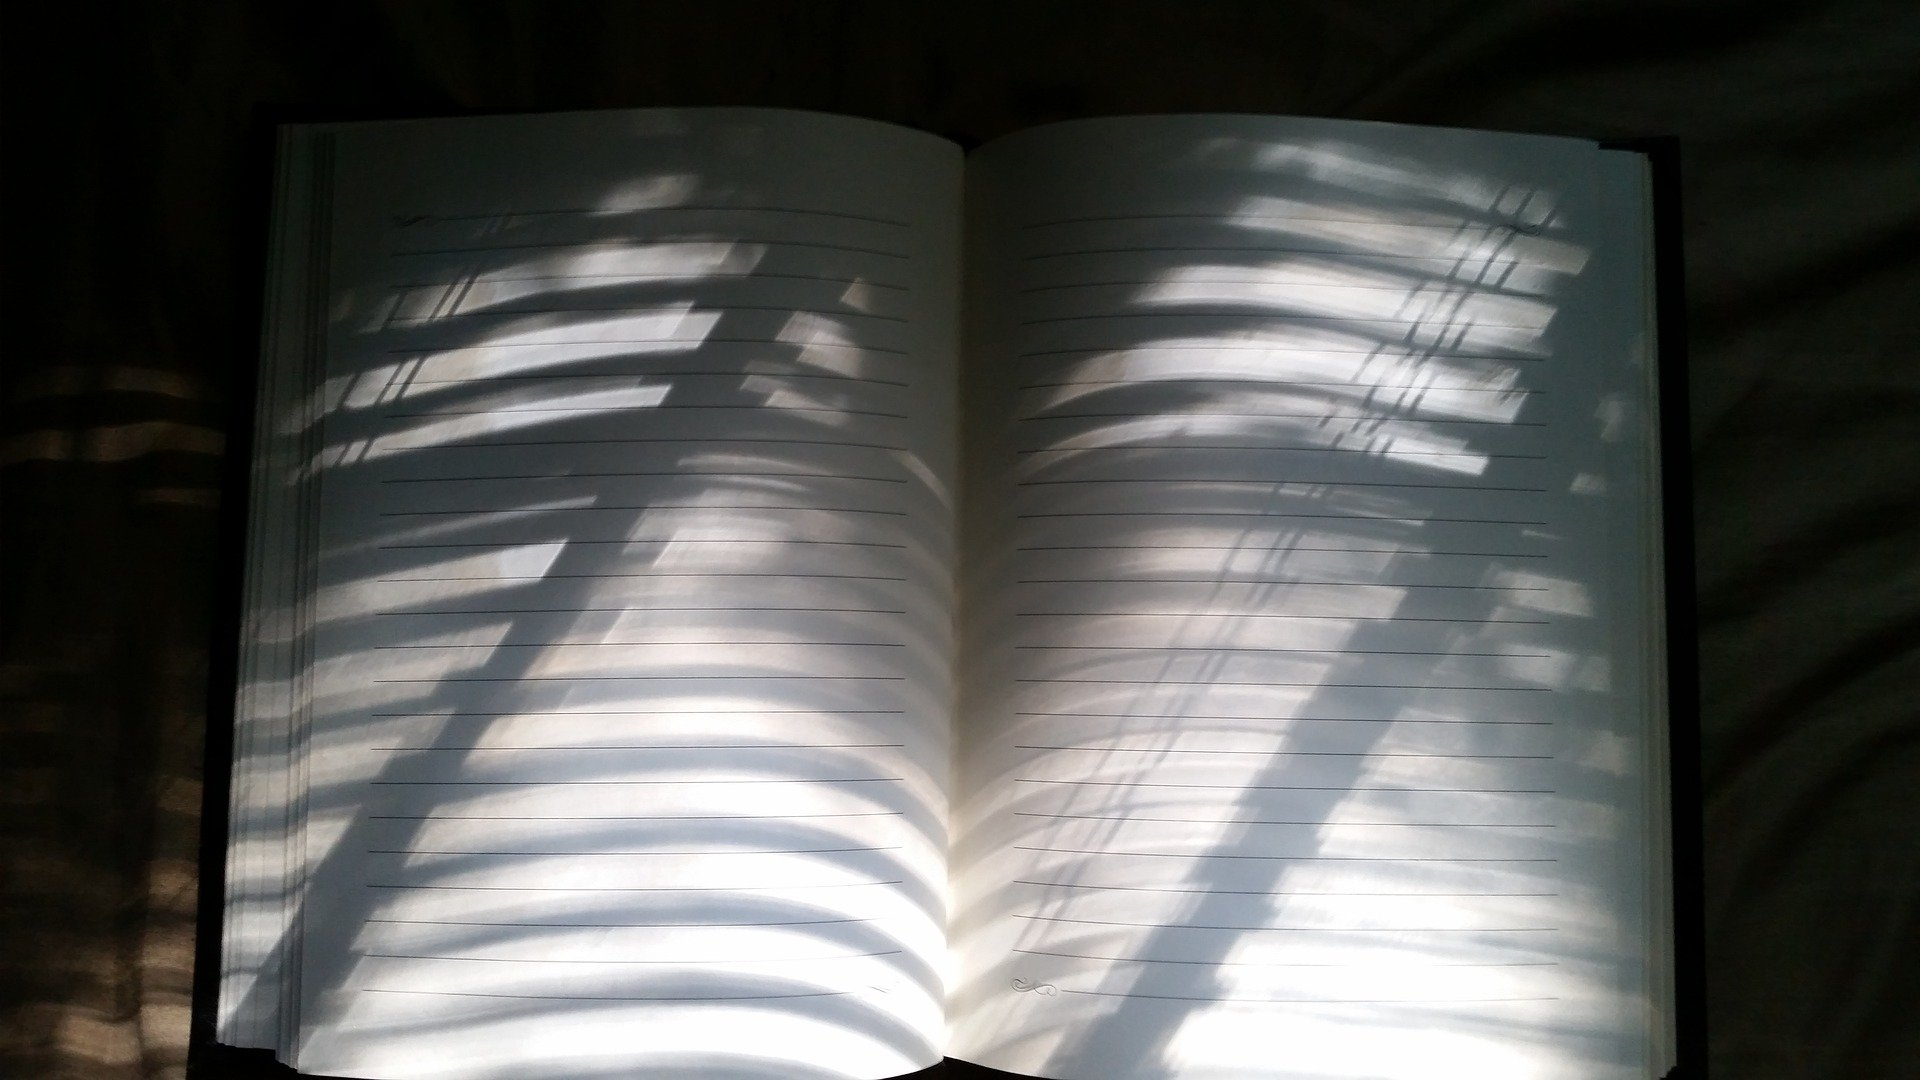 Notes from the Other Side Literary Crime Short Fiction By Harshit Chhabra